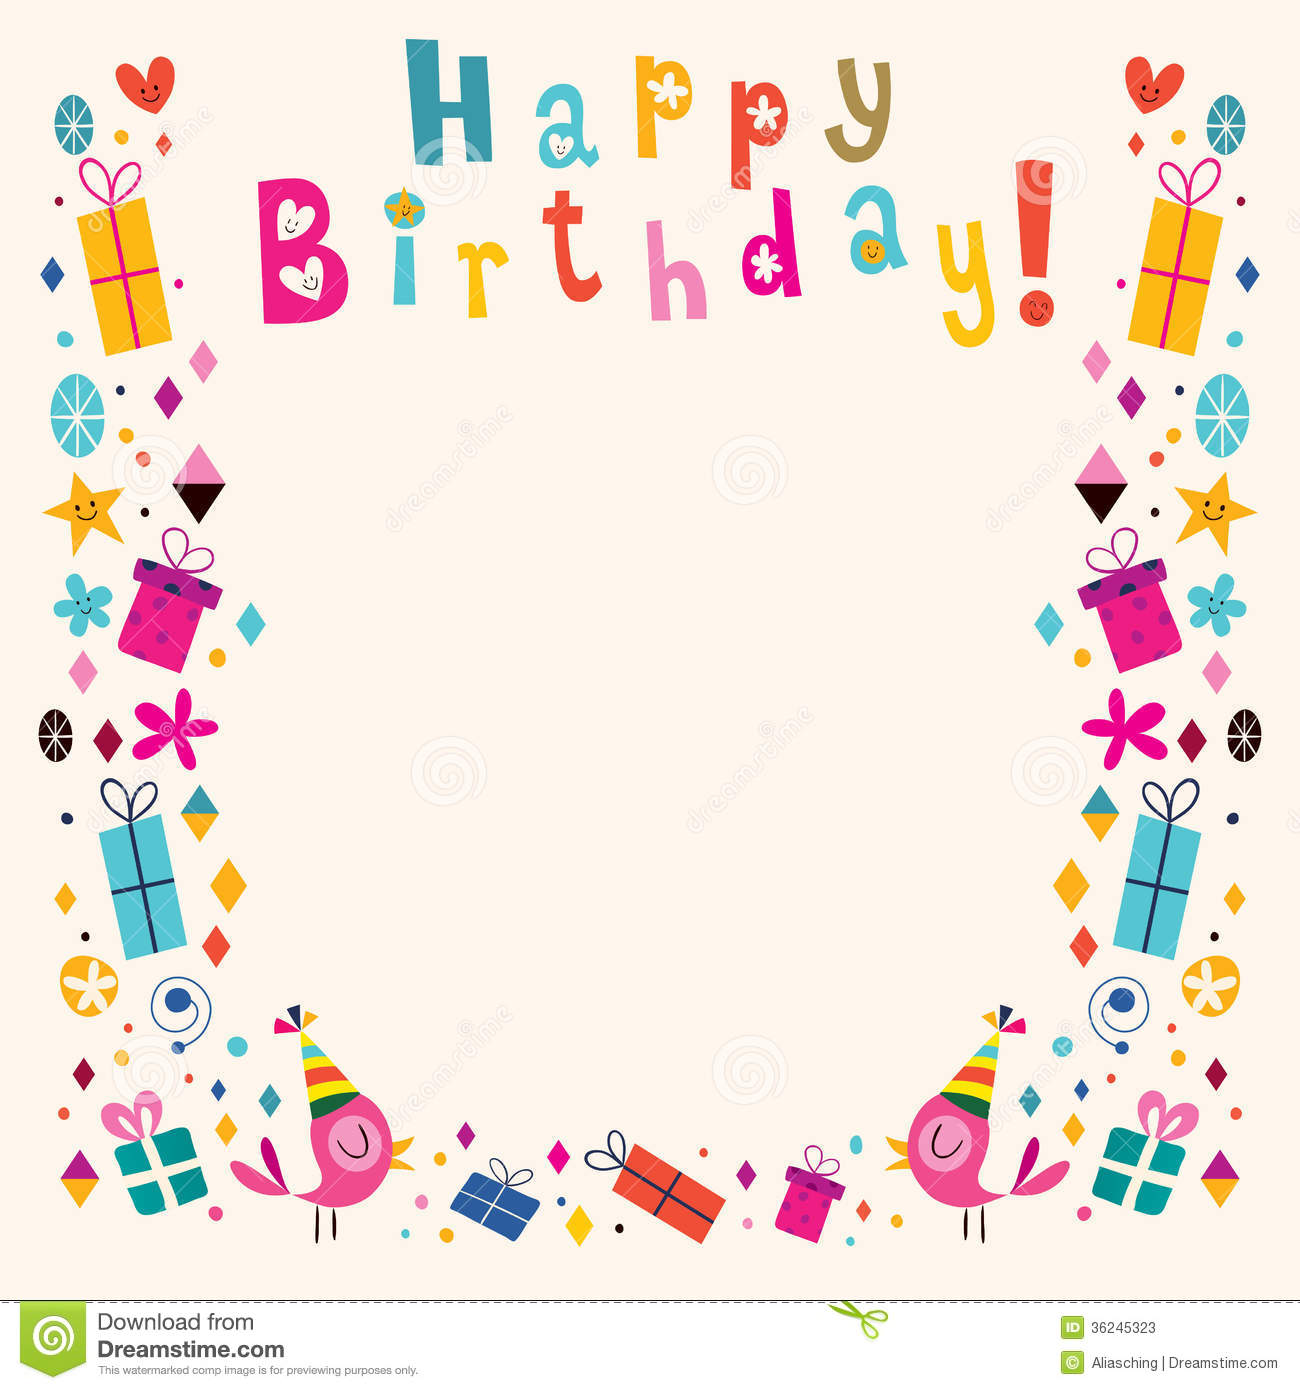 happy birthday picture frame images ; happy-birthday-frame-clipart-1